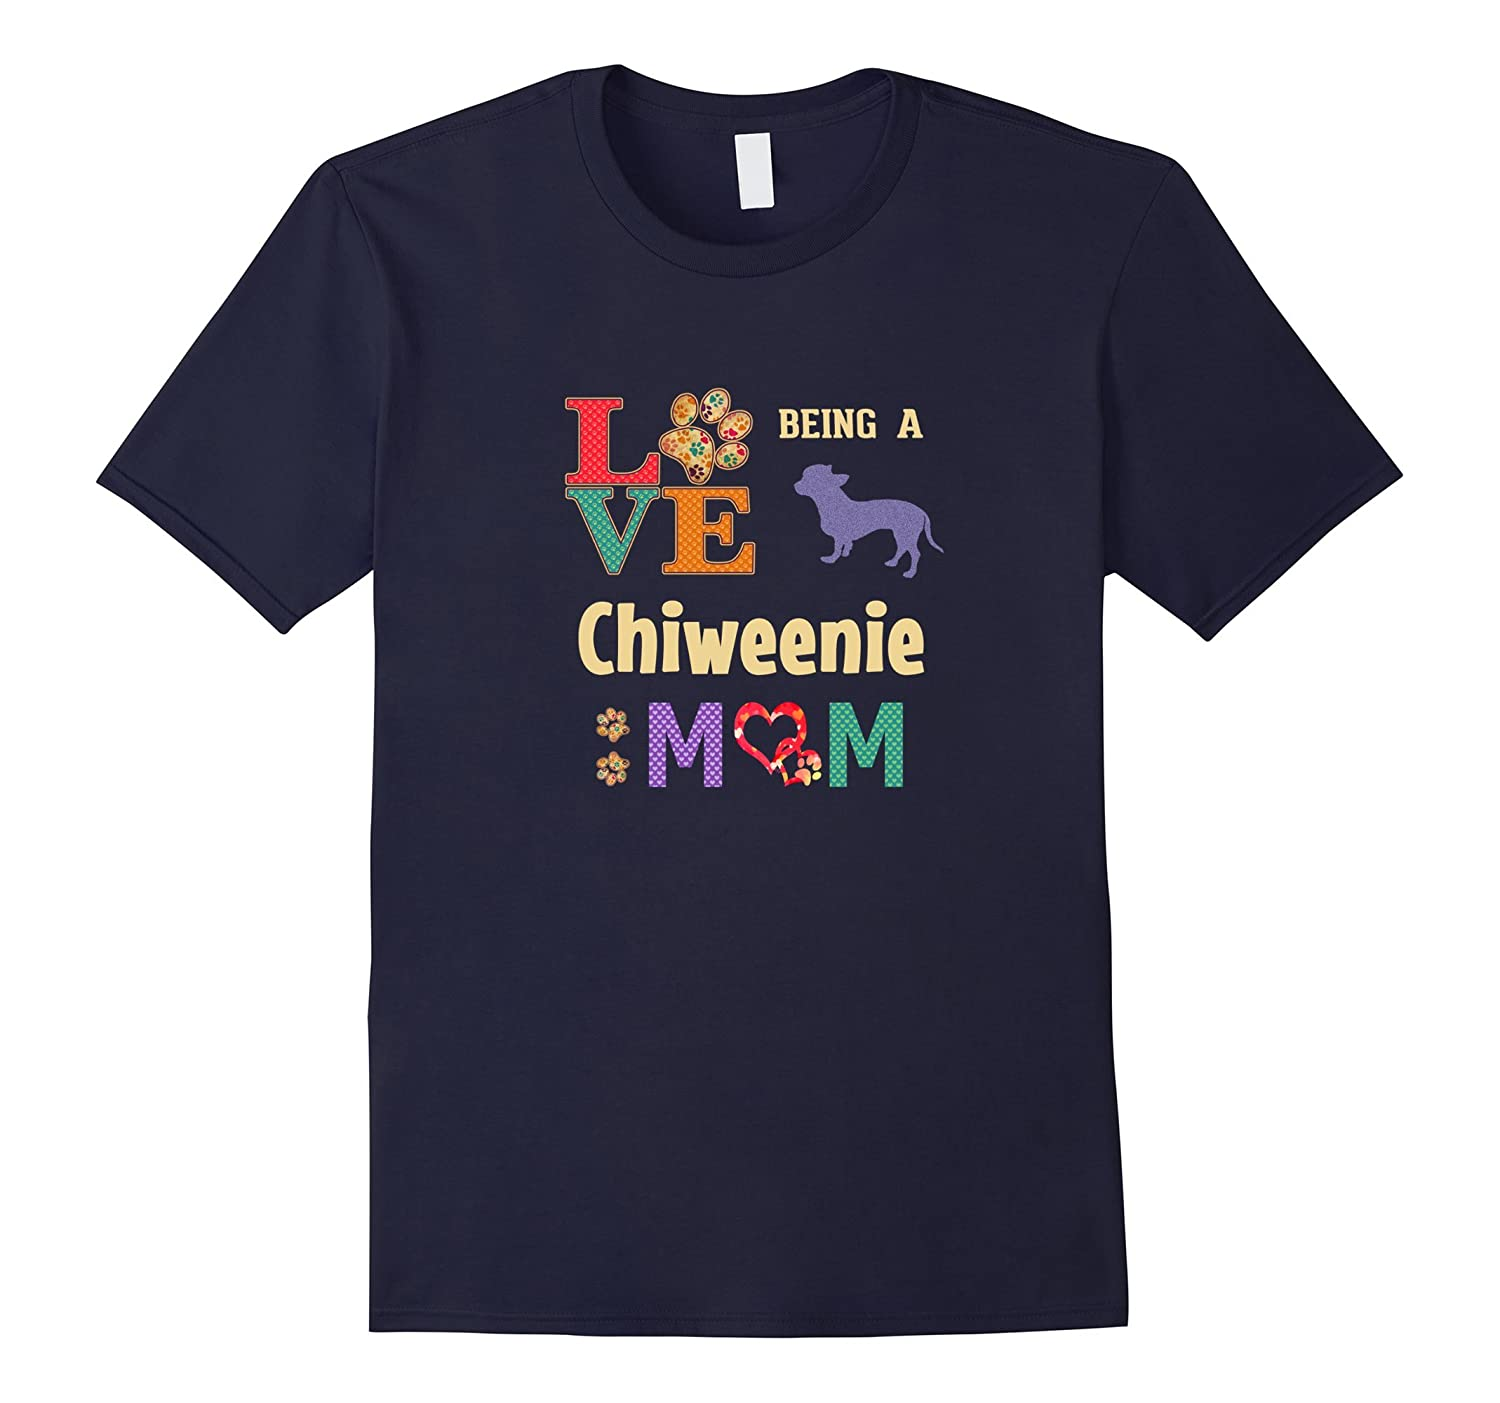 Best Chiweenie Shirt for a Chiweenie Mom